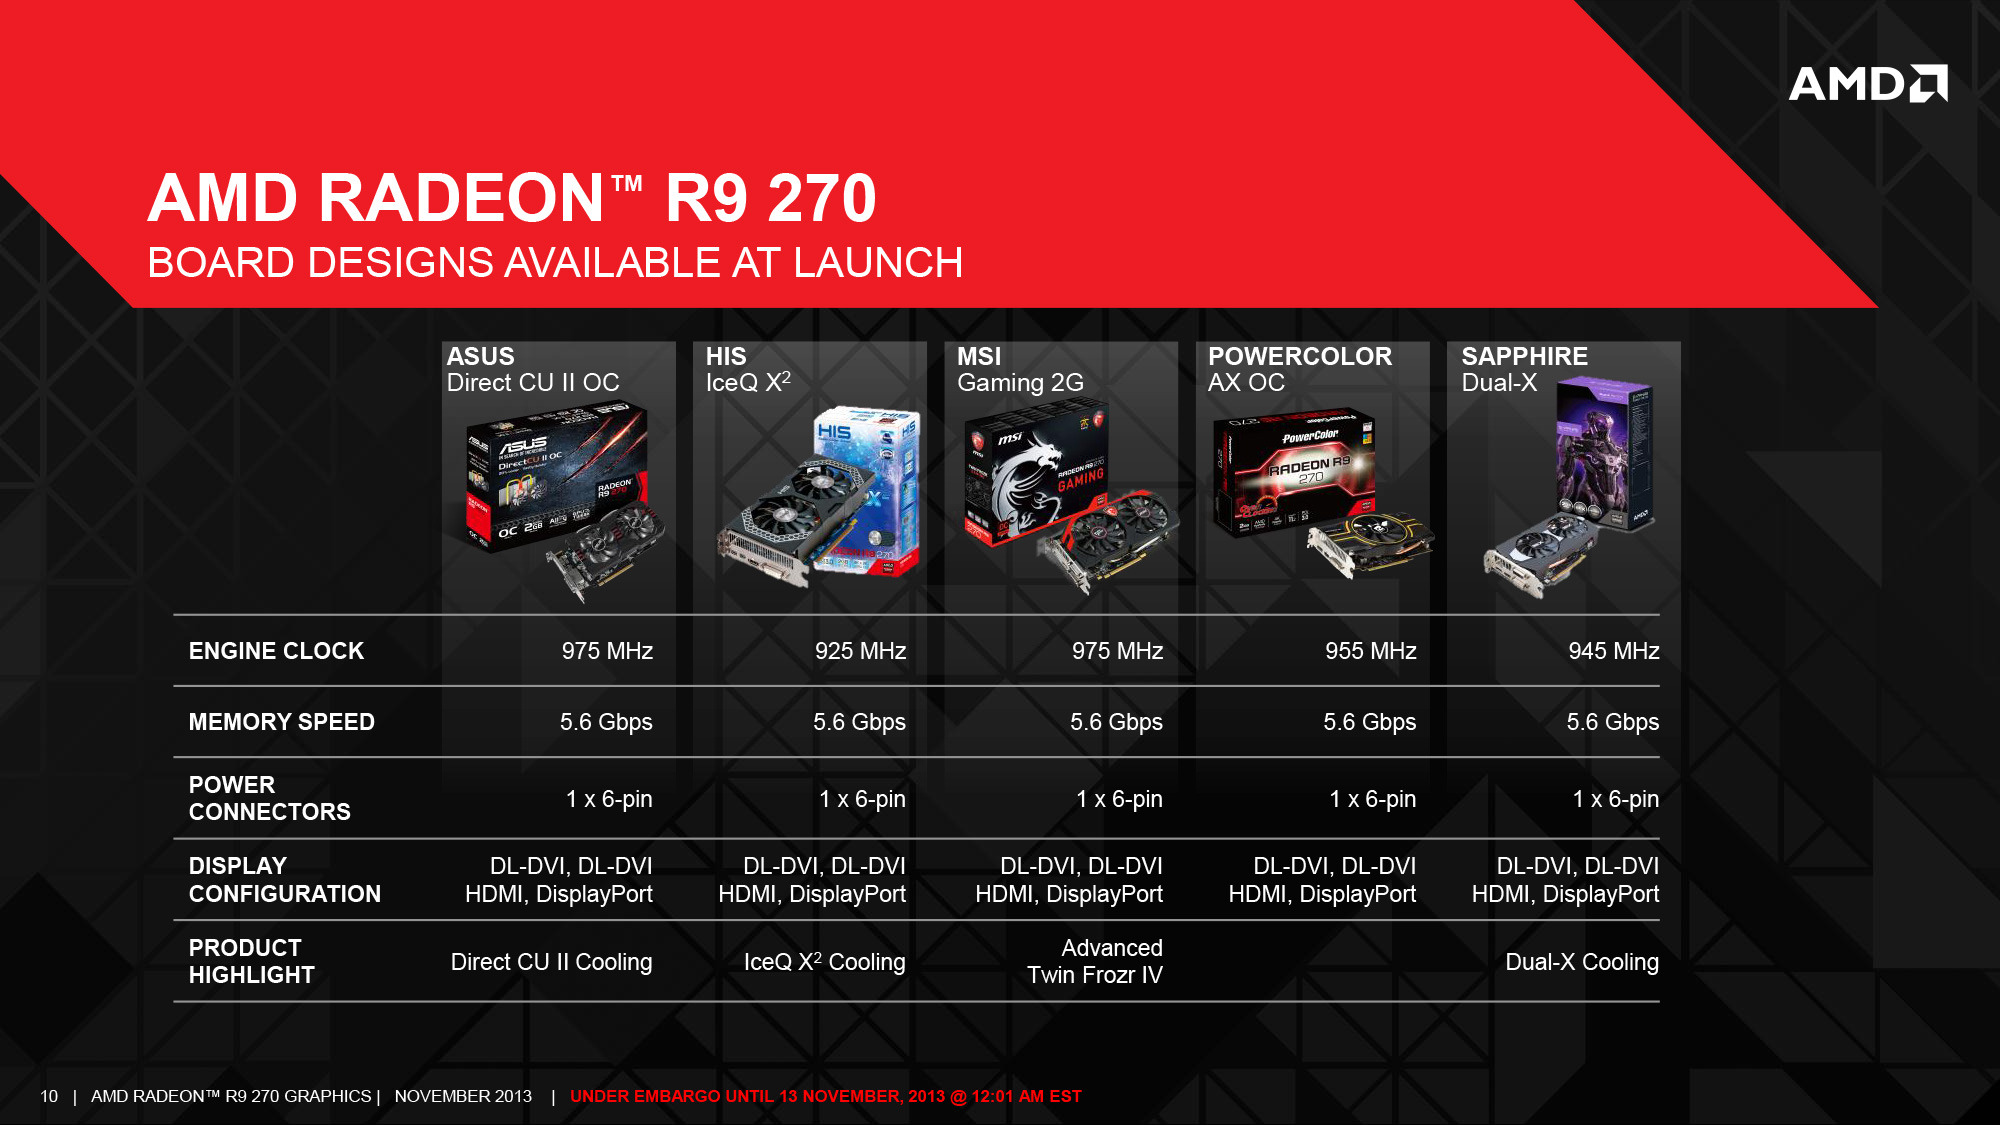 Meet The HIS Radeon R9 270 IceQ X2 & Asus Radeon R9 270 DirectCU II